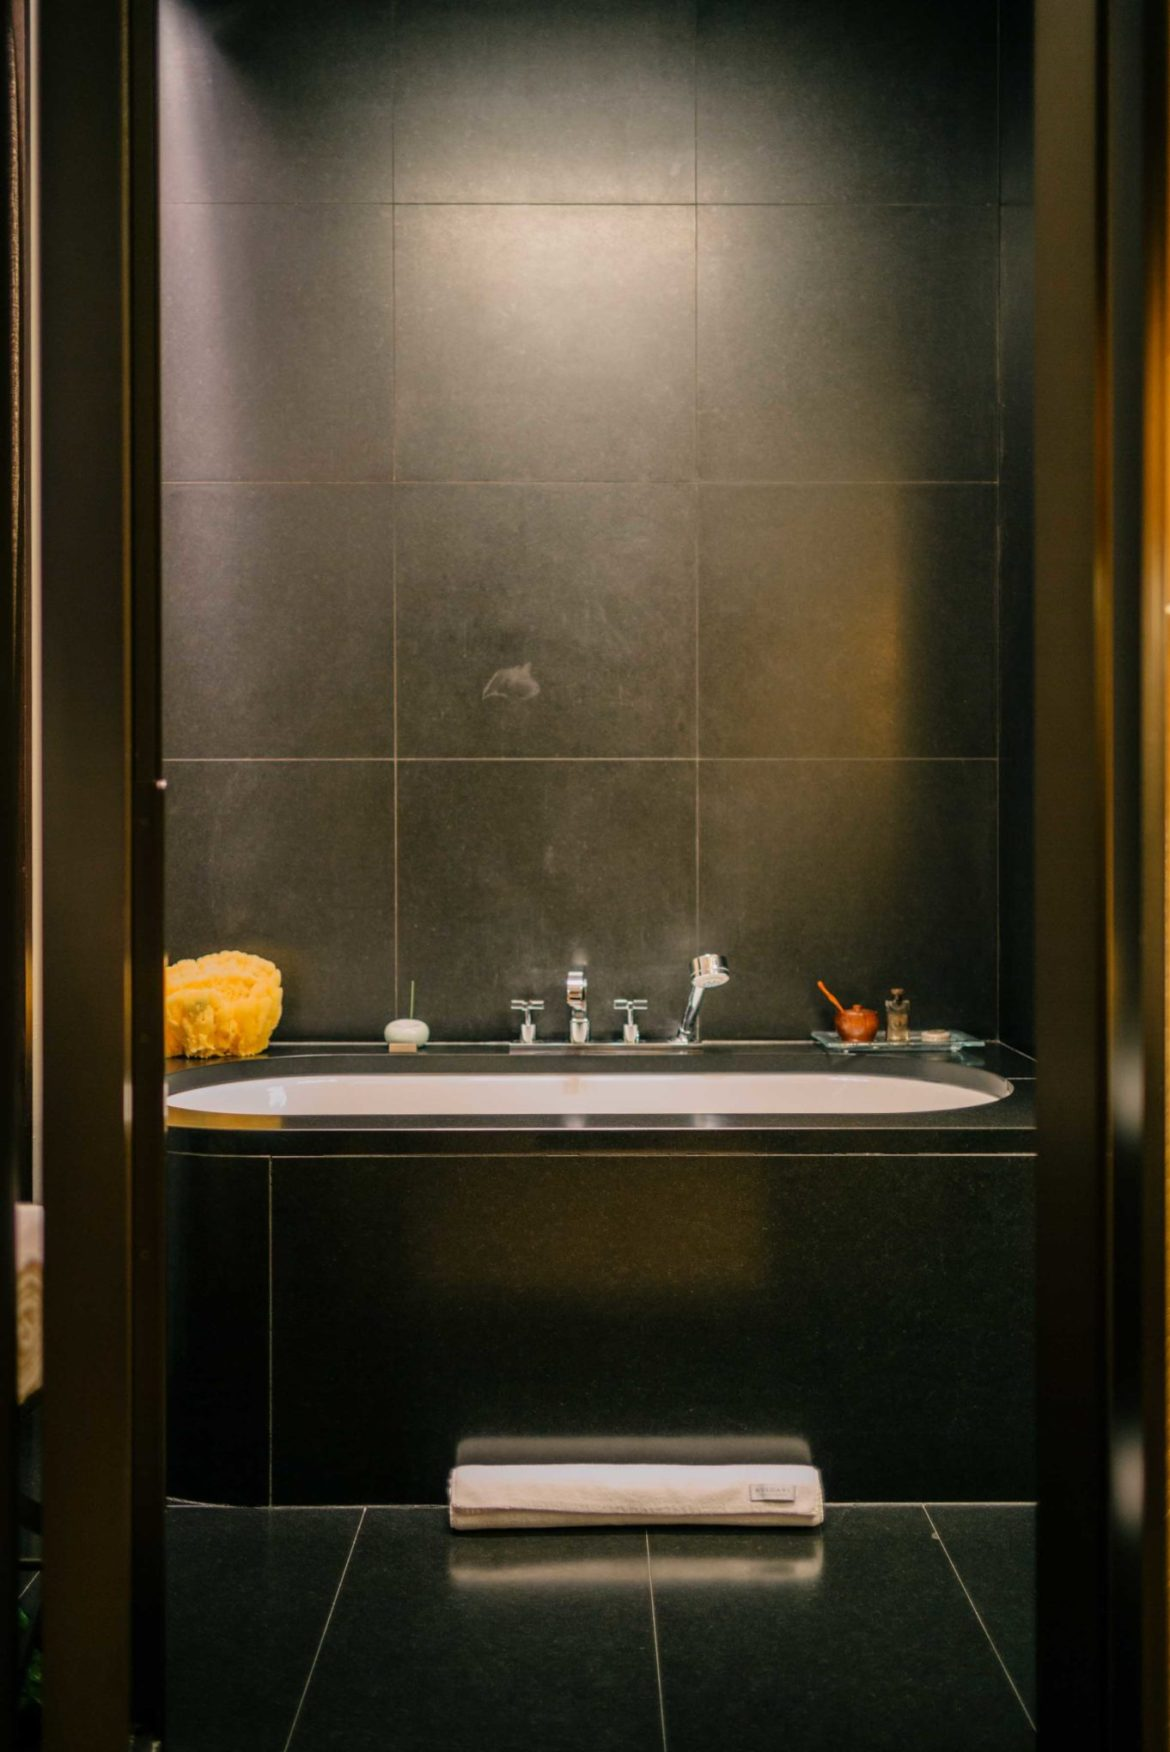 Hotel Bulgari Milano offers oversized bathtubs with bath salts and incense along with tea to start your visit right, The Taste Edit